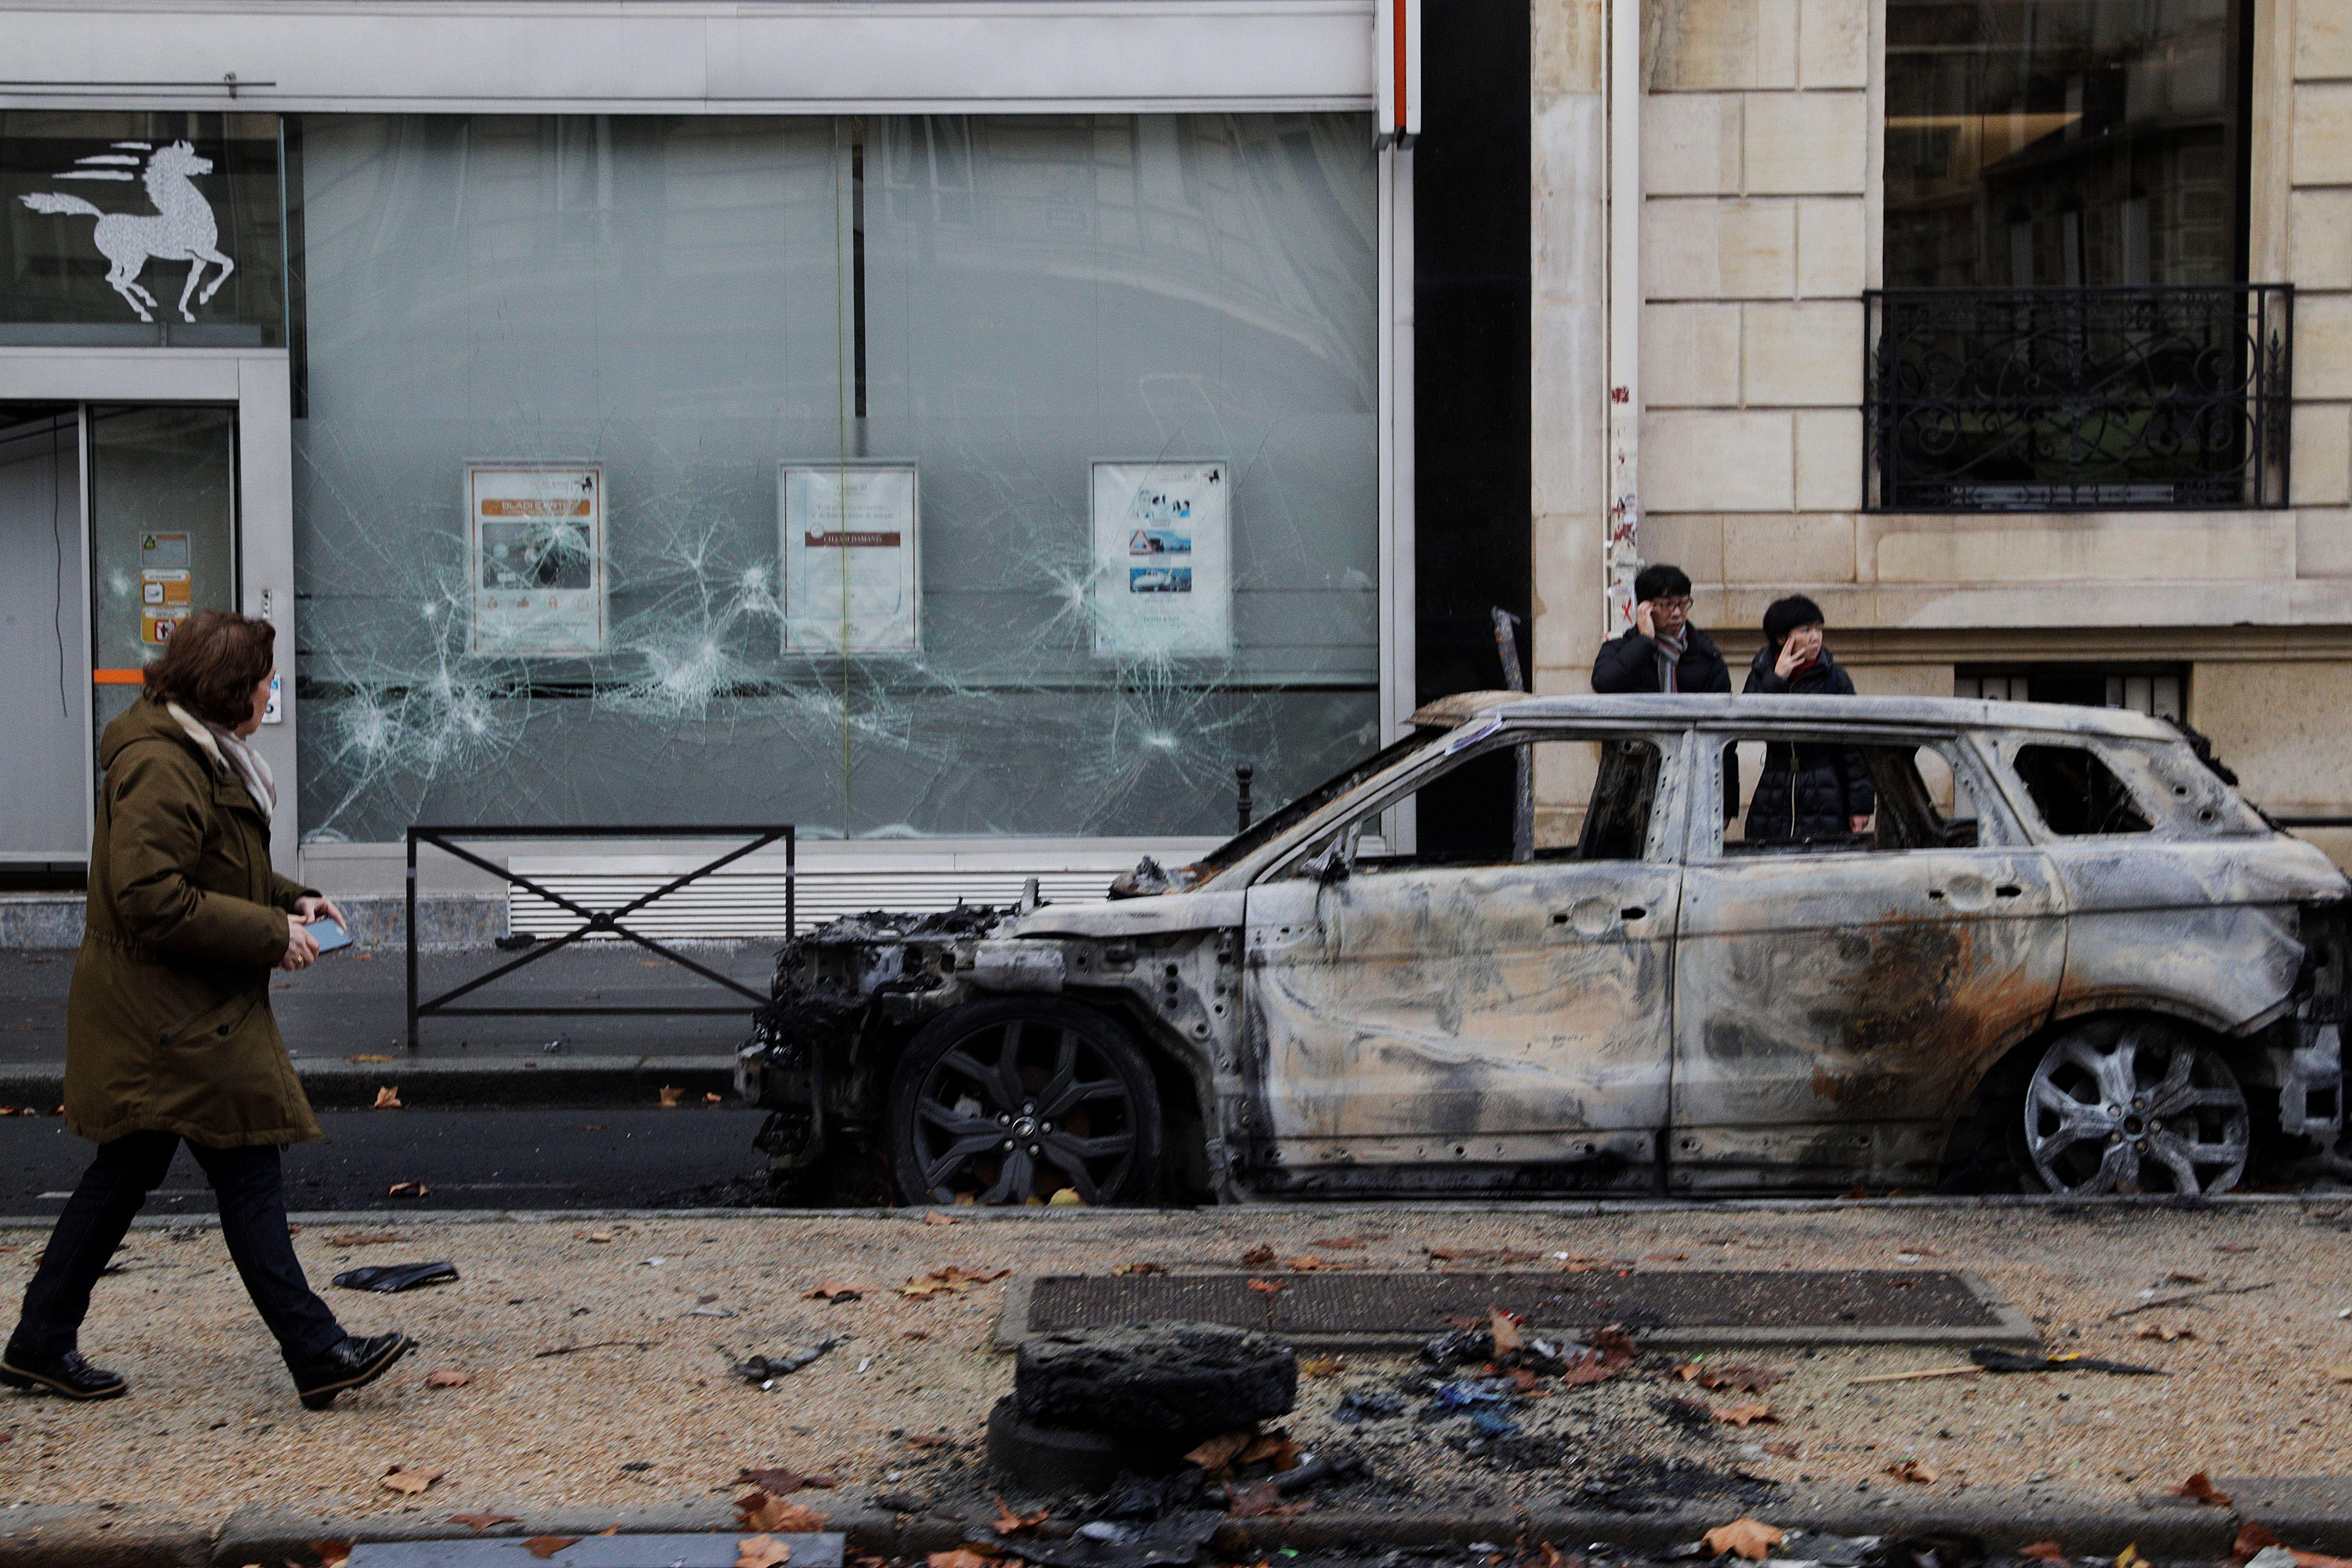 People stand next to a charred car in Paris on December 2, 2018.